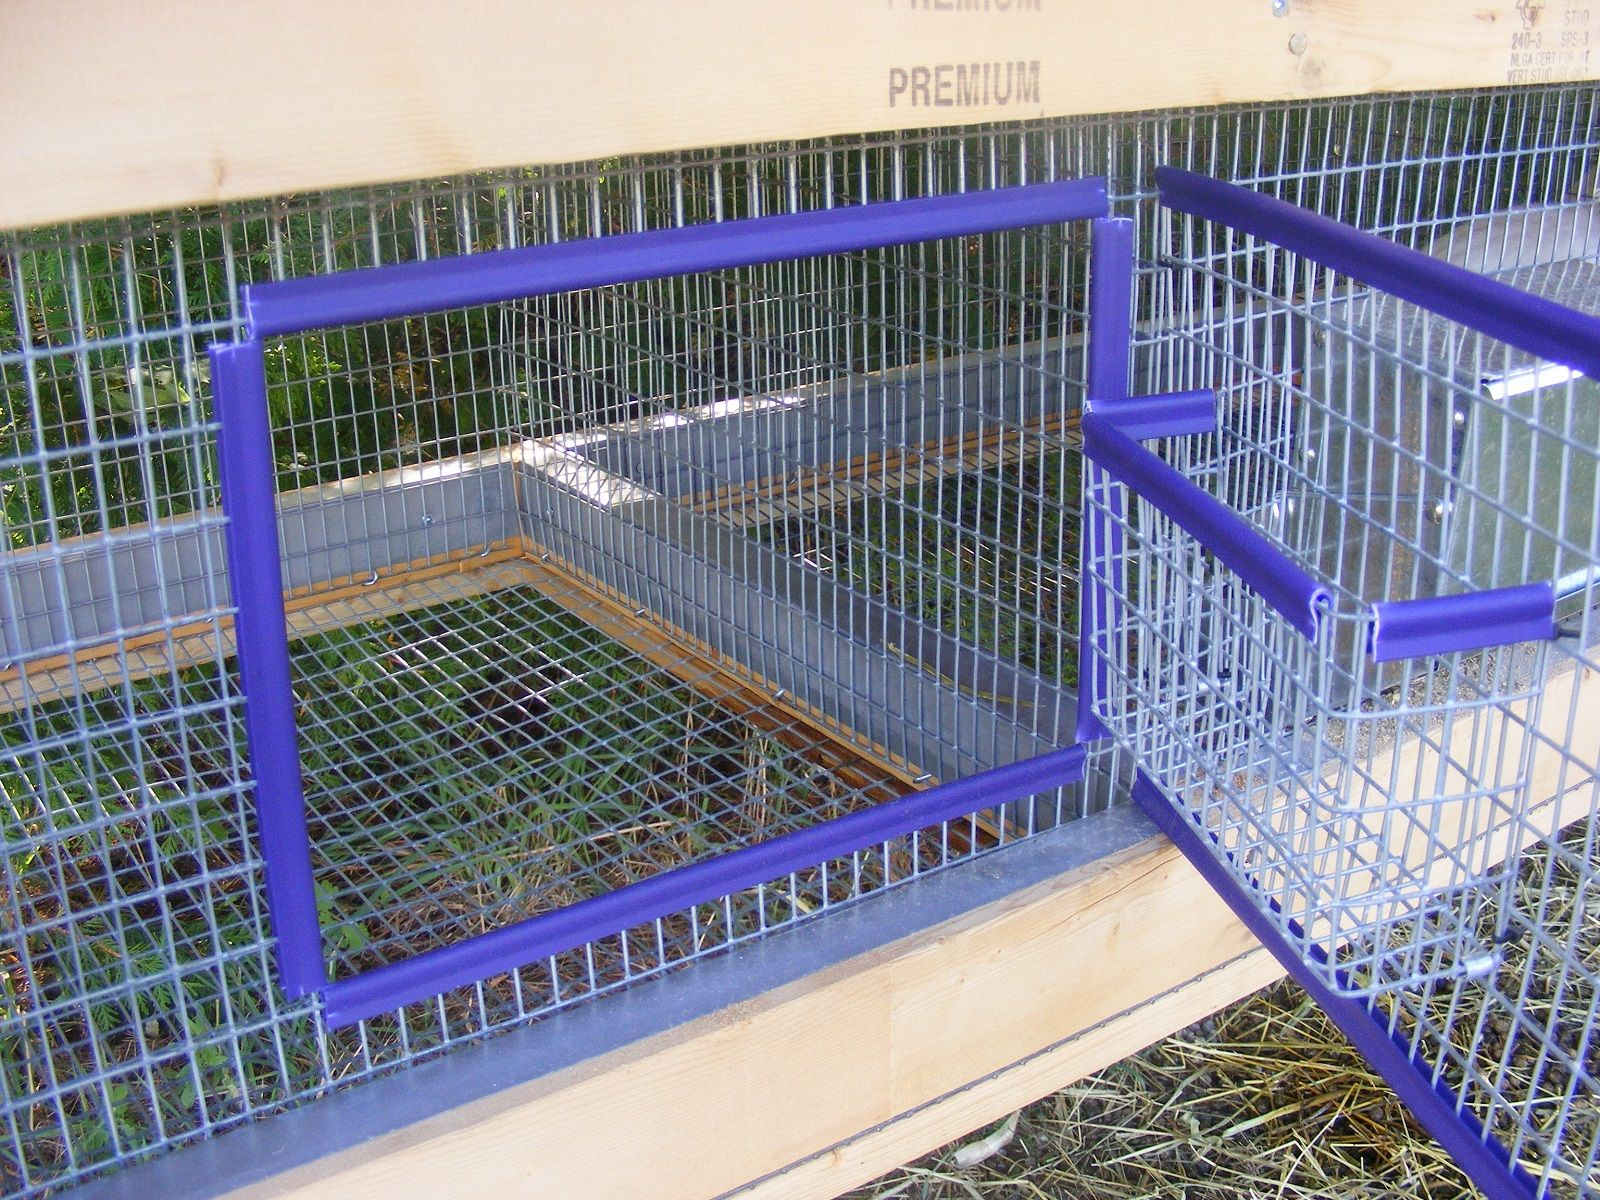 Diy Cage For Rabbit Homemade Rabbit Cage The Door With A Hay Rack Attacked I